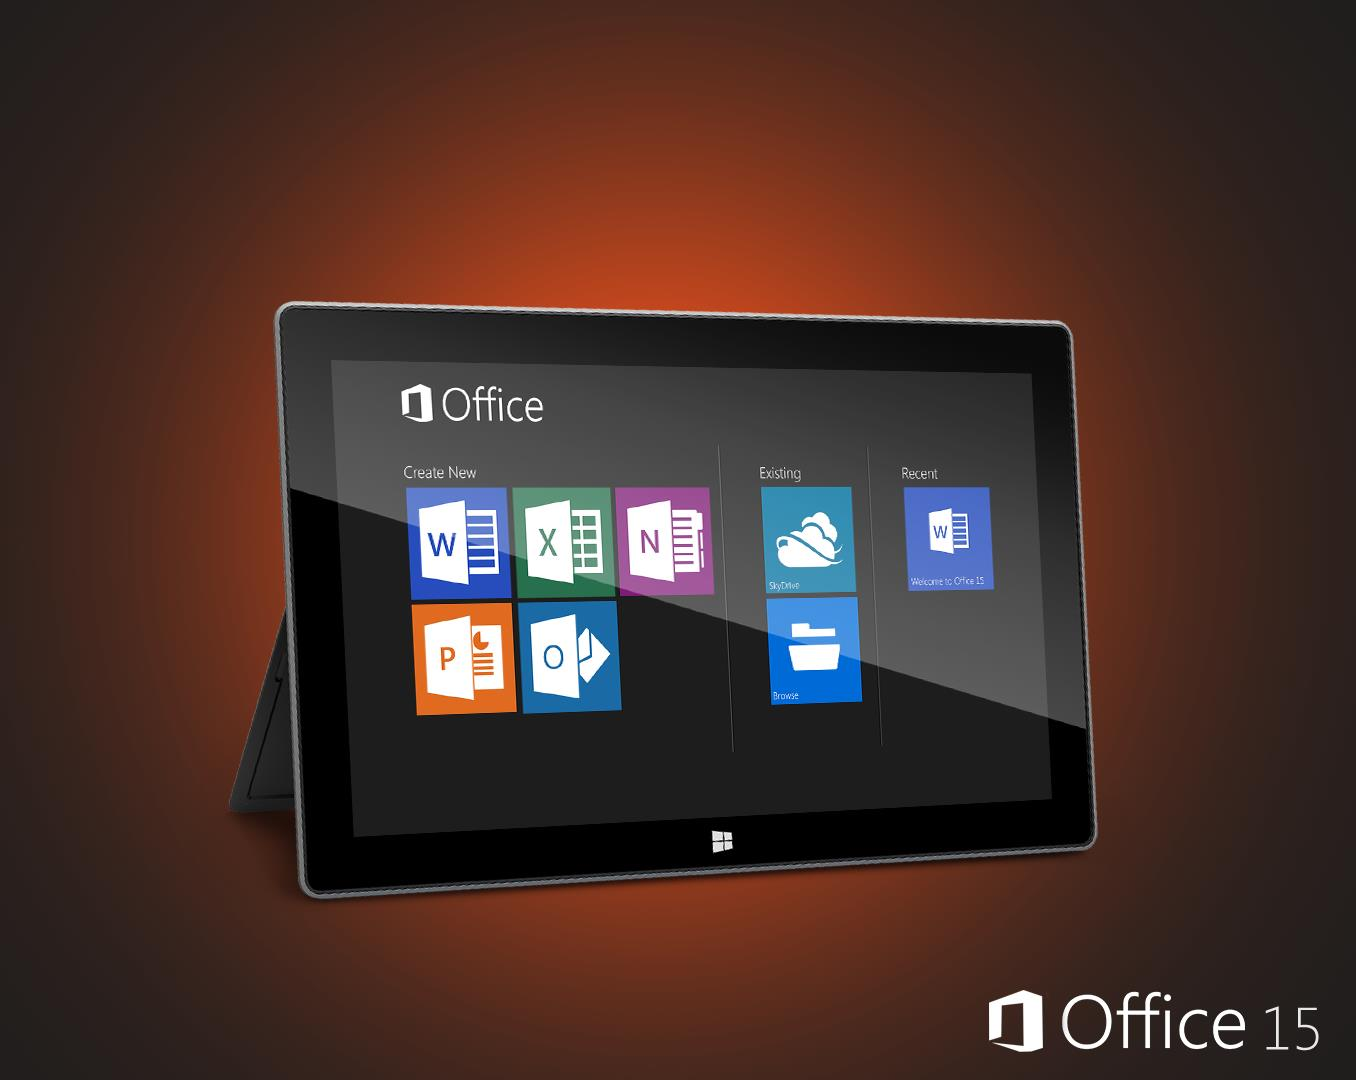 MS Office 15